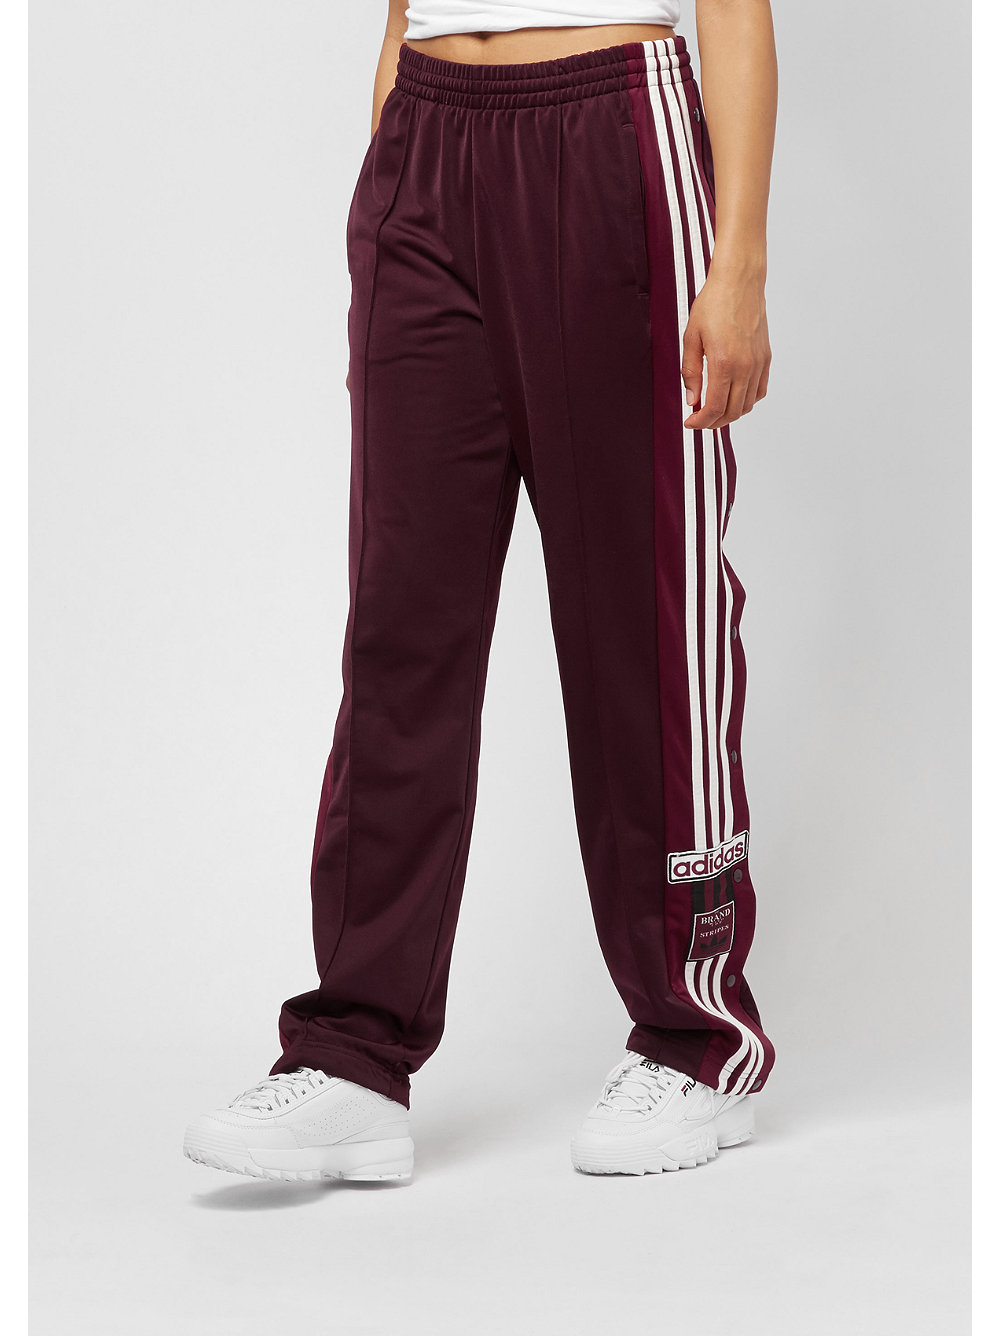 pick up 19cee a3f13 Ordina Pantaloni sportivi adidas Adibreak maroon su SNIPES